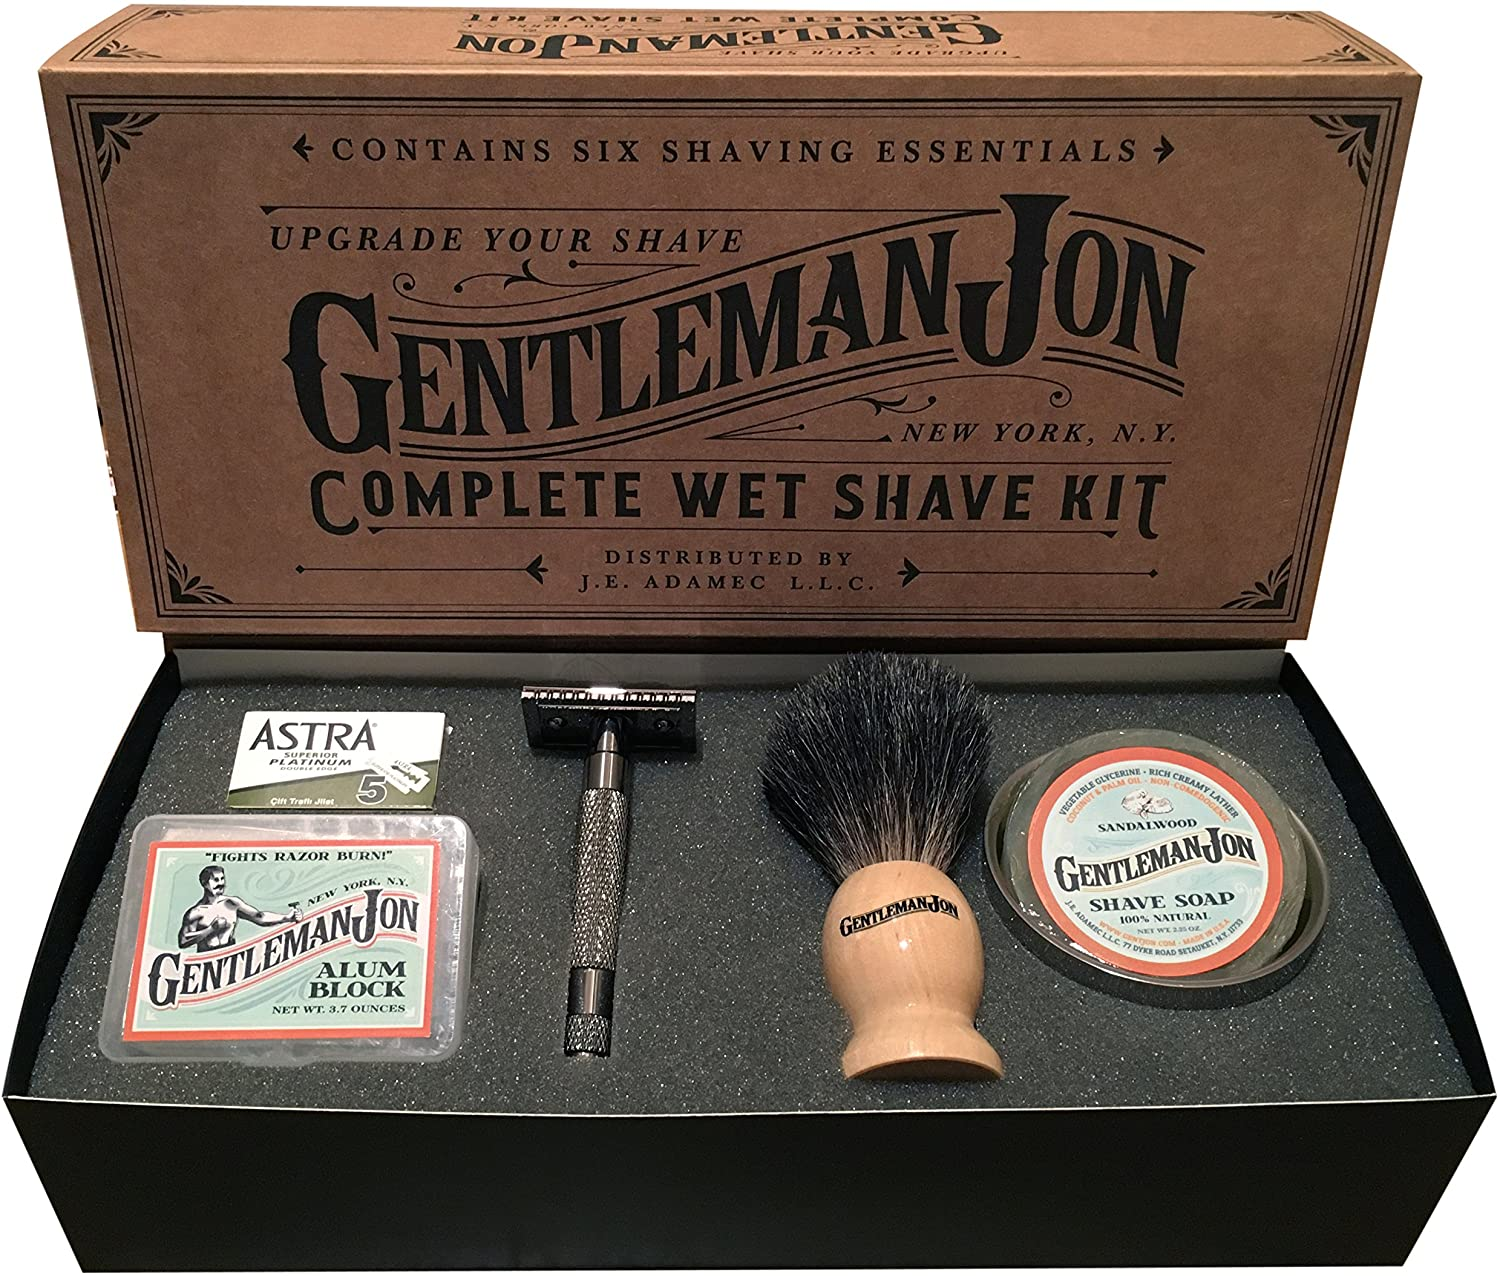 Gentleman Jon Complete Wet Shaving Kit for men in a box